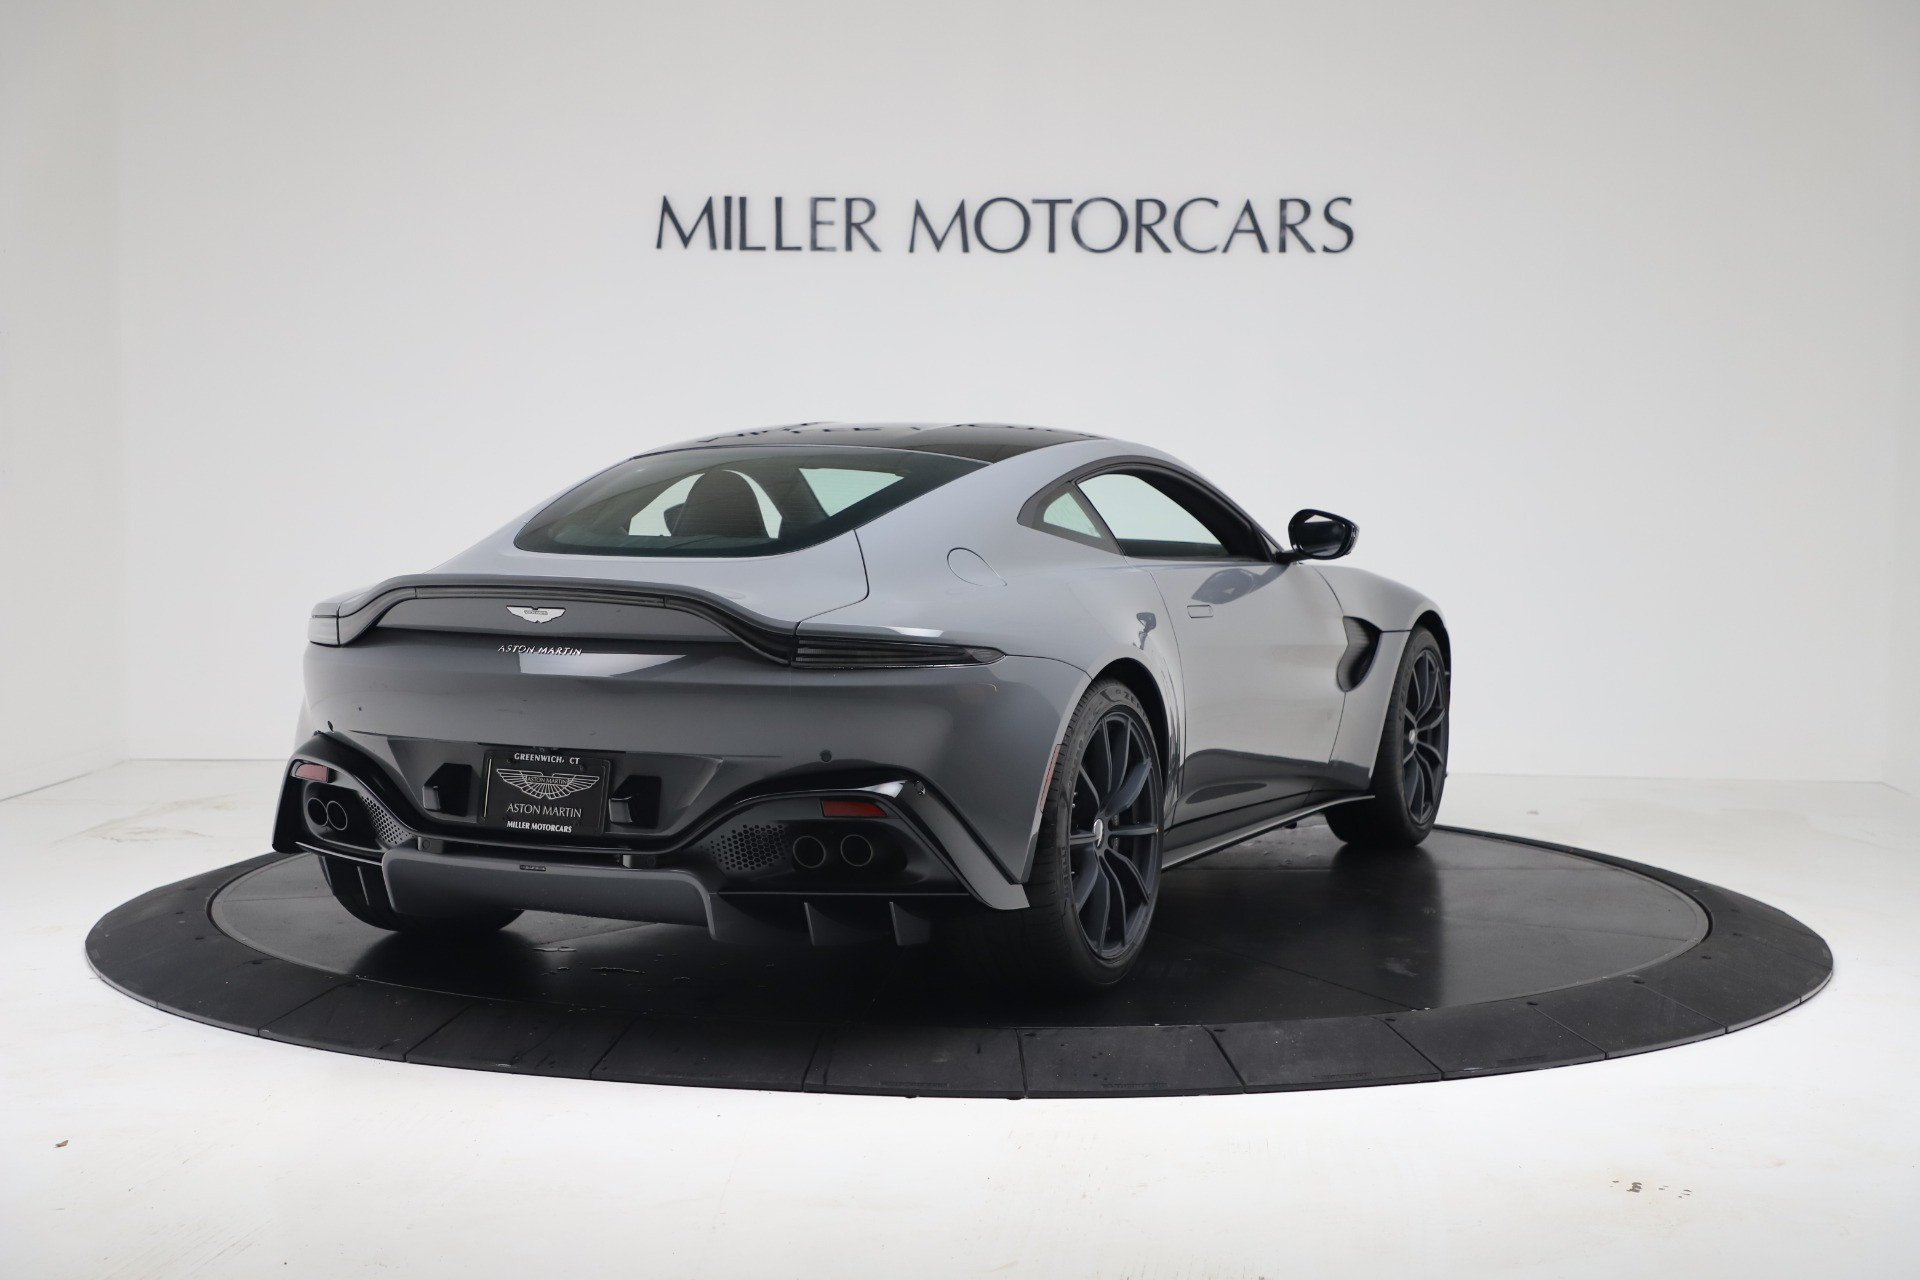 New 2020 Aston Martin Vantage Coupe For Sale 189 139 Miller Motorcars Stock A1415